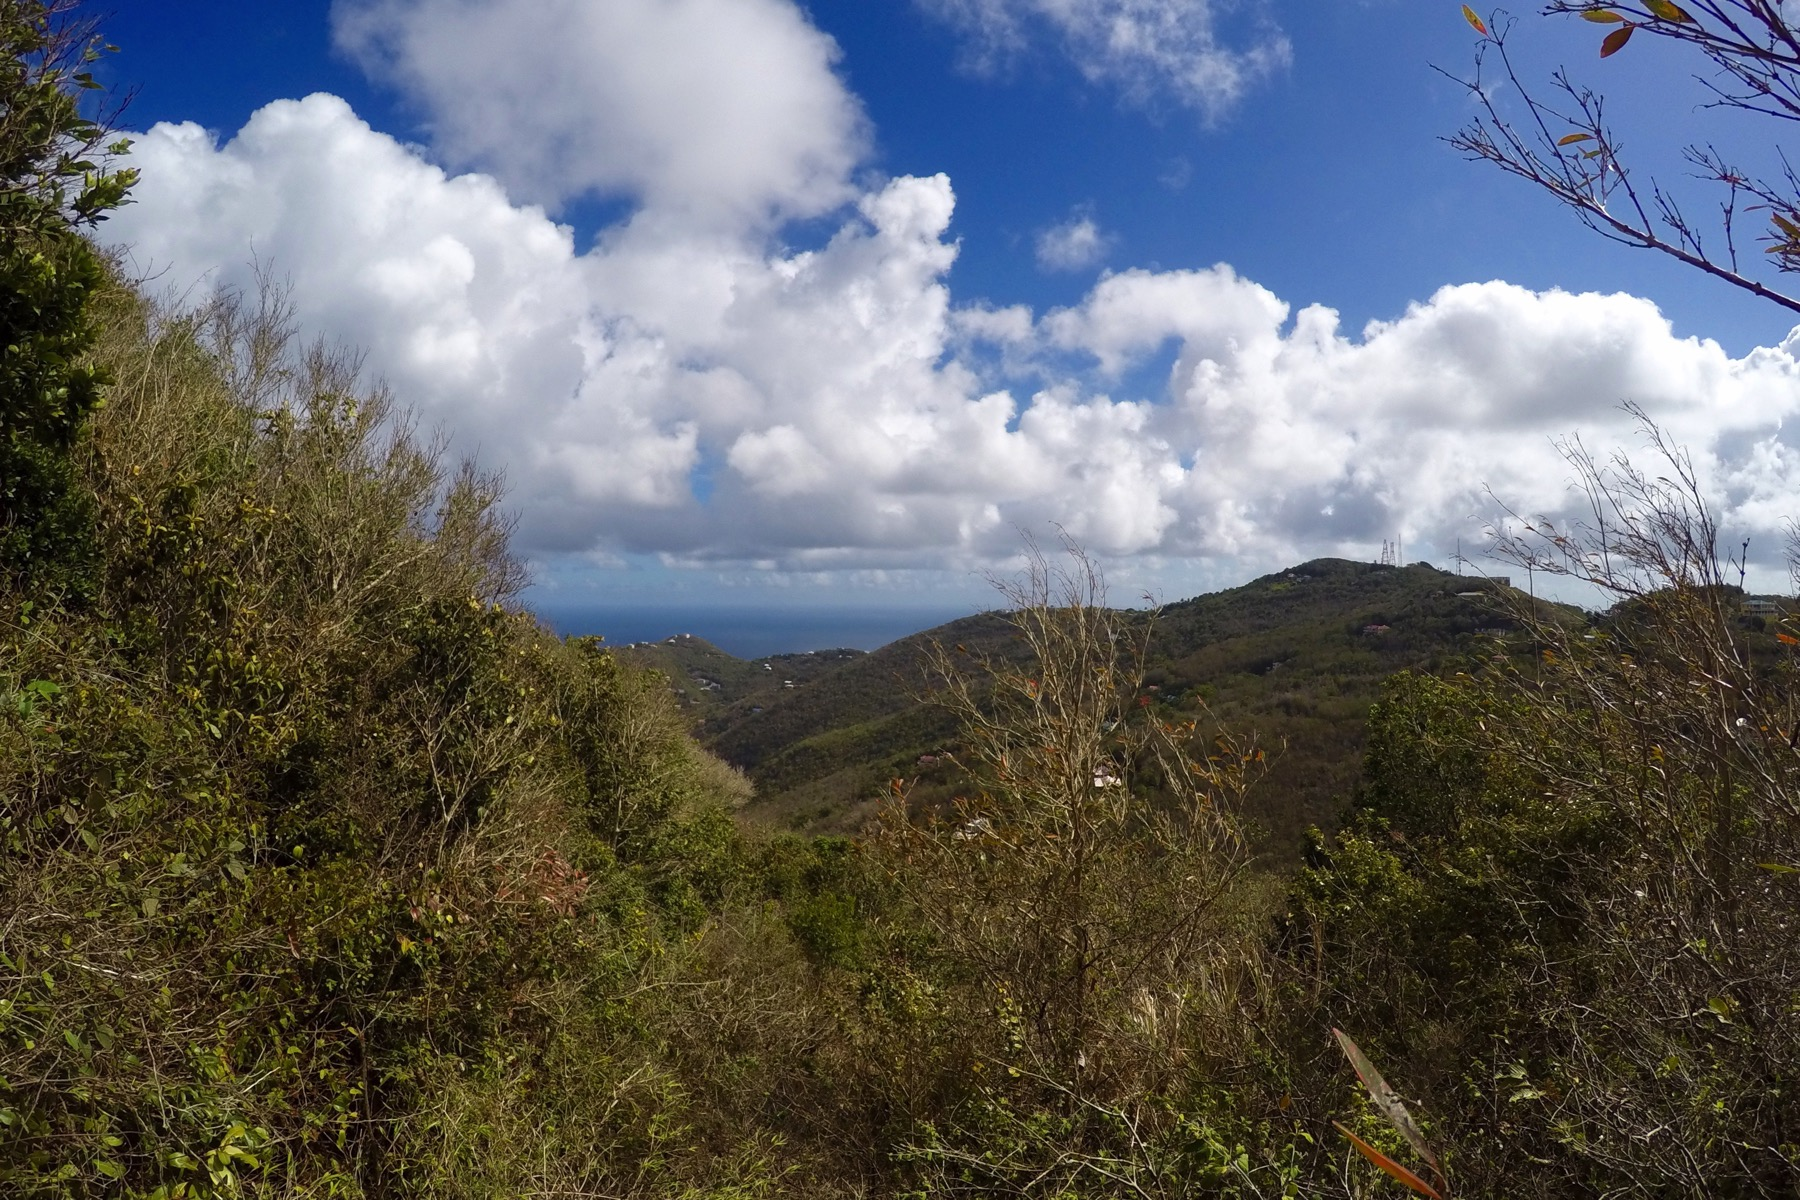 Land for Sale at Mount Sage Land Lot 5 Sage Mountain, Tortola British Virgin Islands